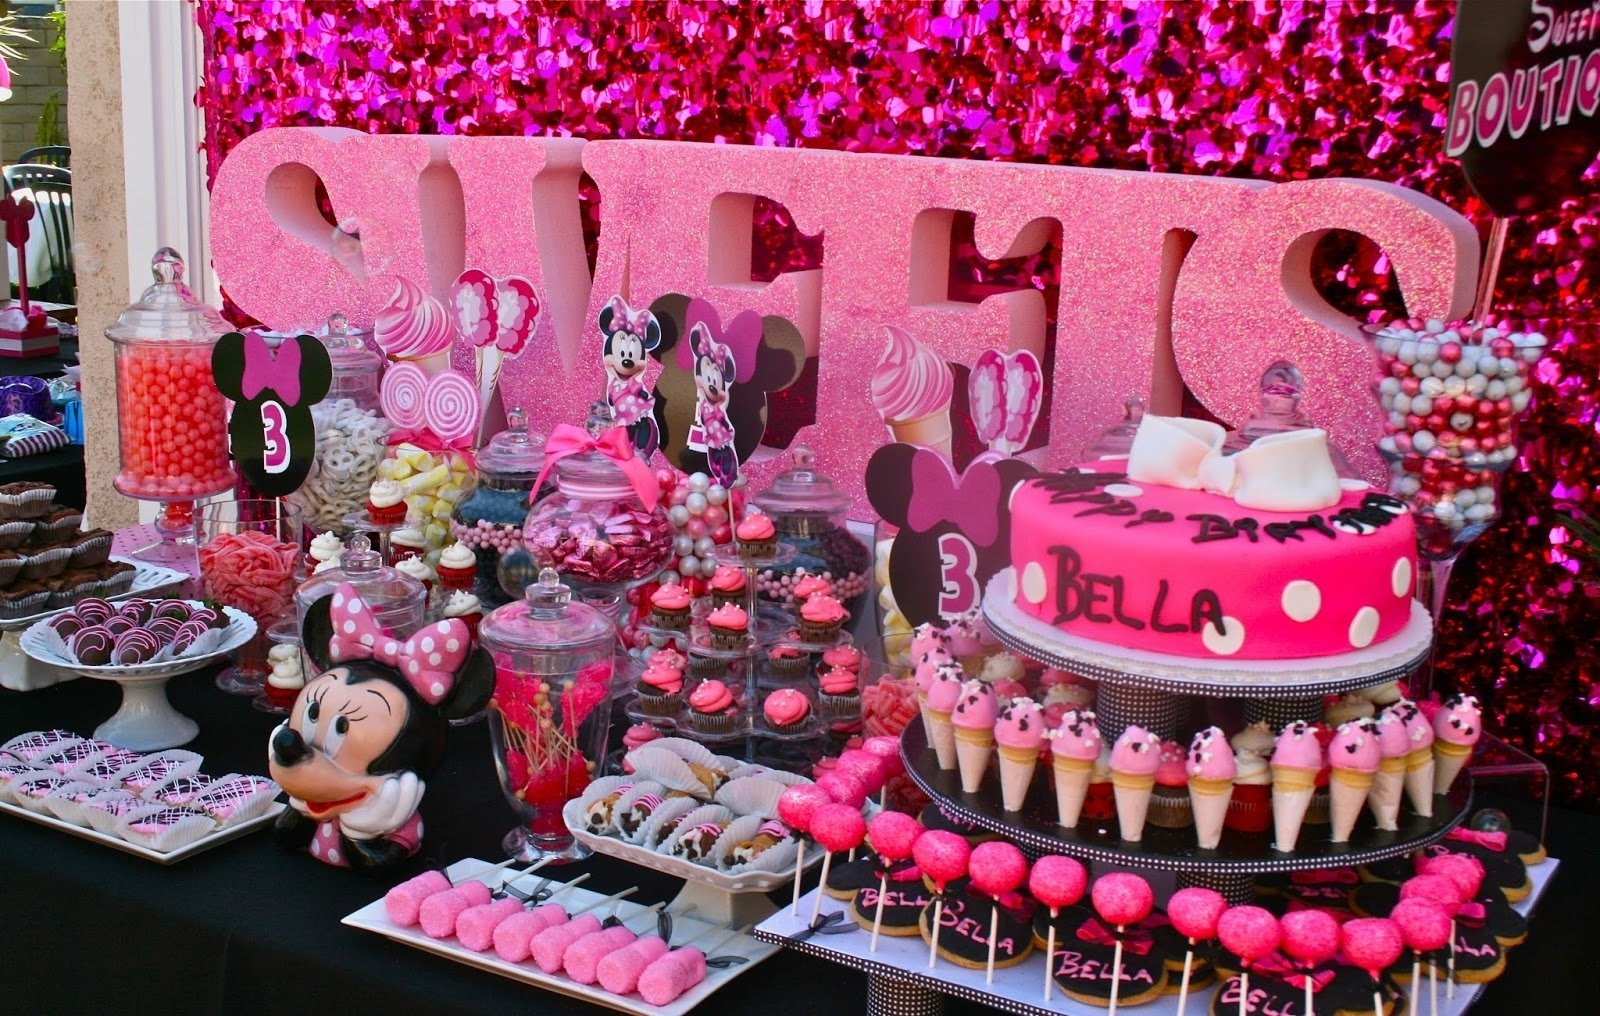 10 Wonderful Minnie Mouse Candy Bar Ideas when your mom is president of candy girl land has no self control 2021